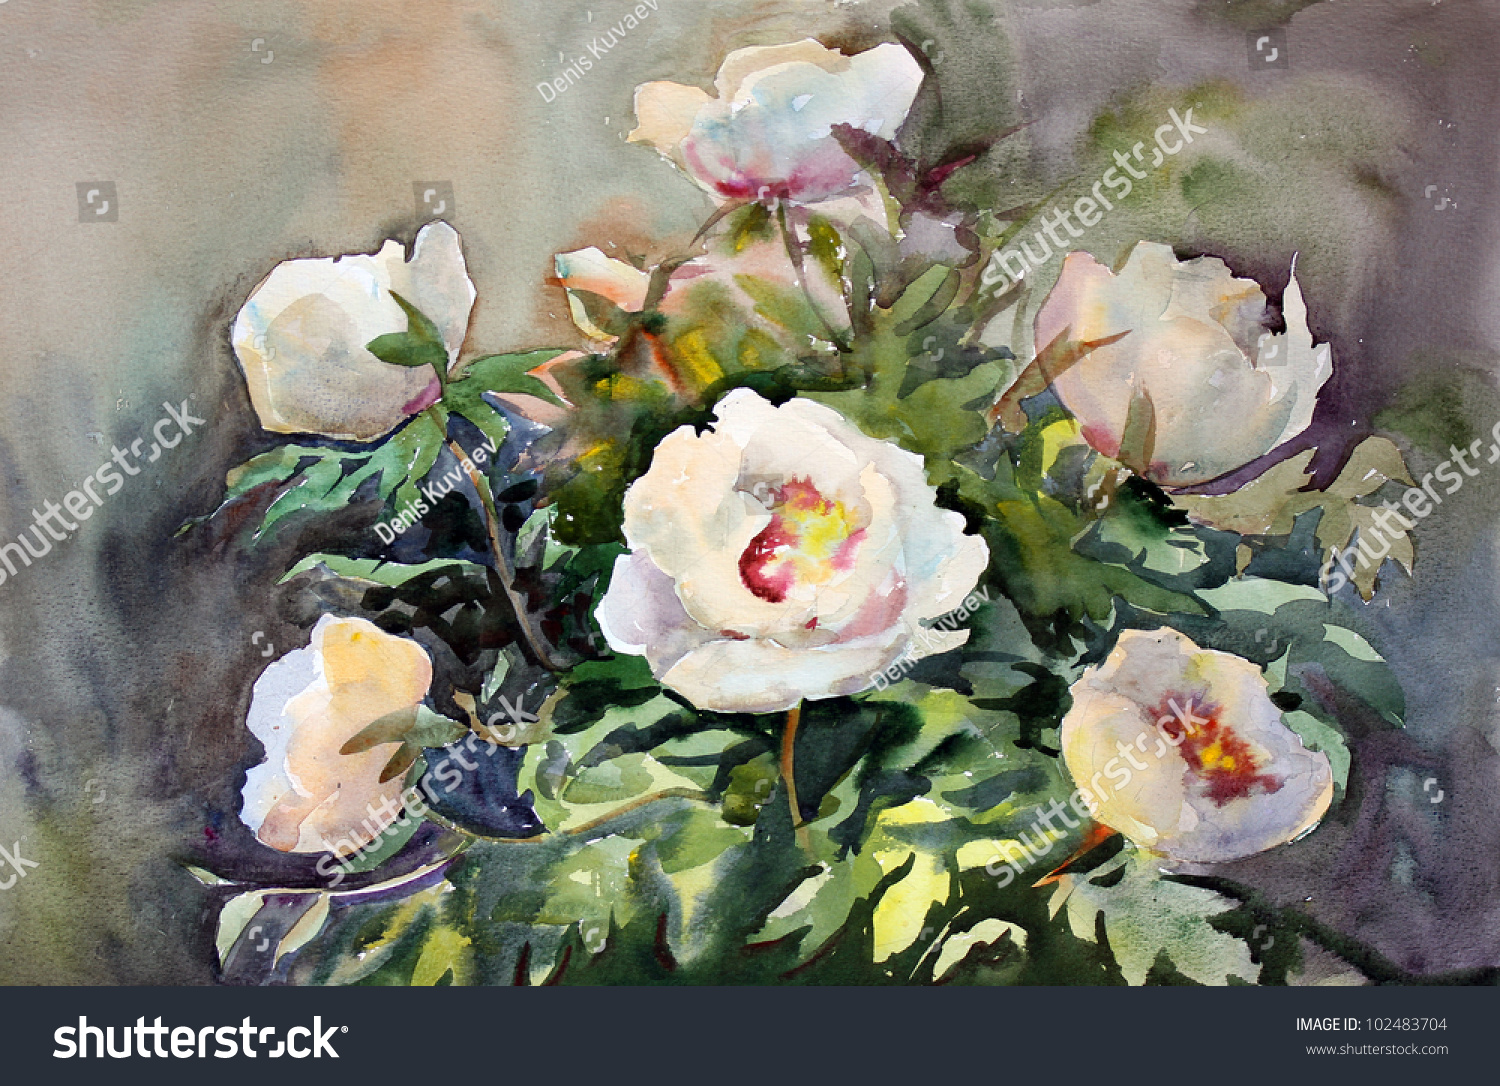 Watercolor painting beautiful flowers stock illustration 102483704 watercolor painting of the beautiful flowers izmirmasajfo Image collections